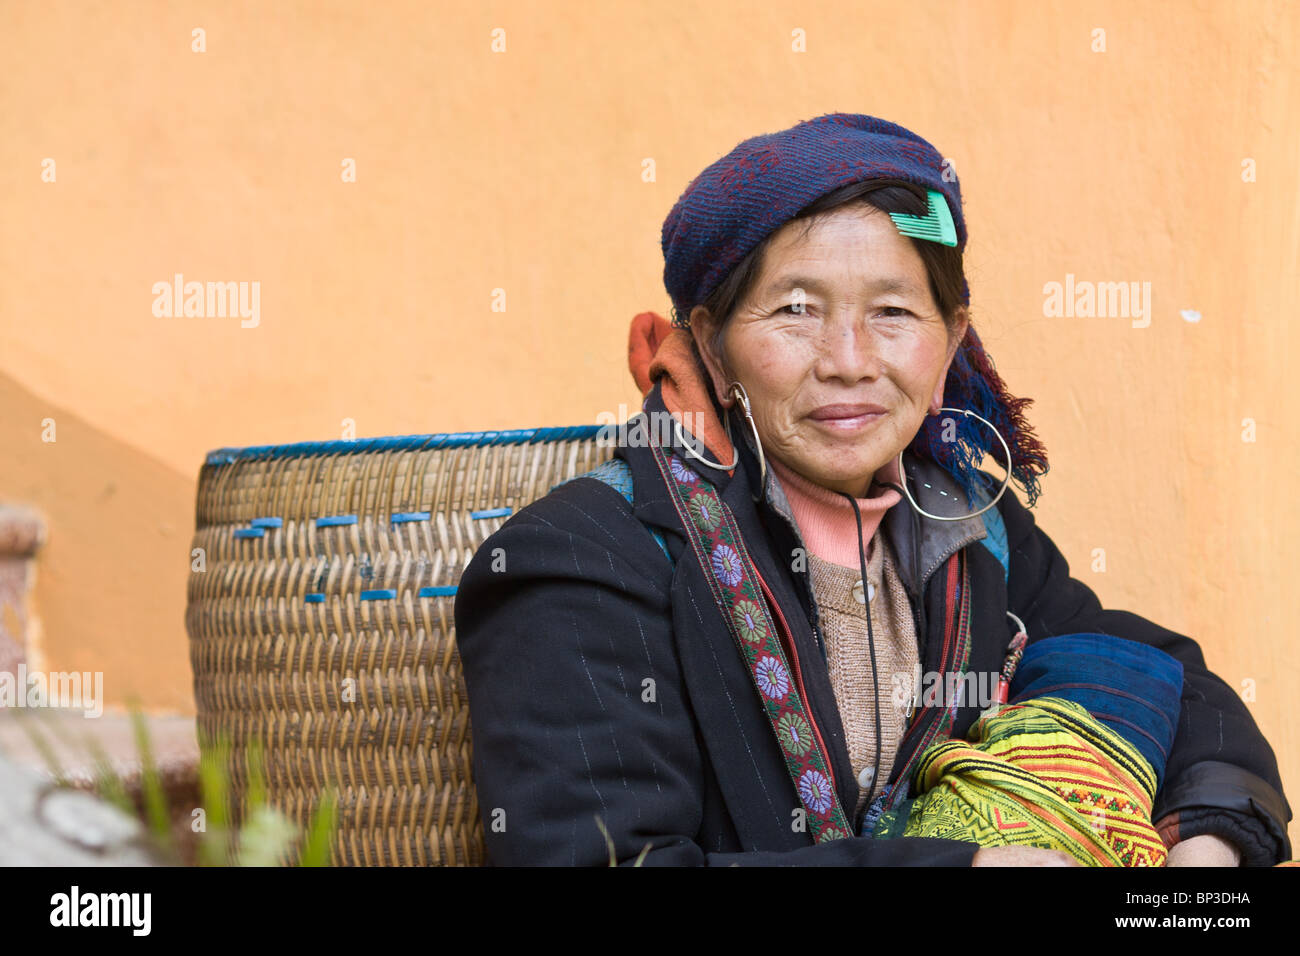 a  Black Hmong woman sitting with her basket next to a colorful wall in Sapa, vietnam - Stock Image